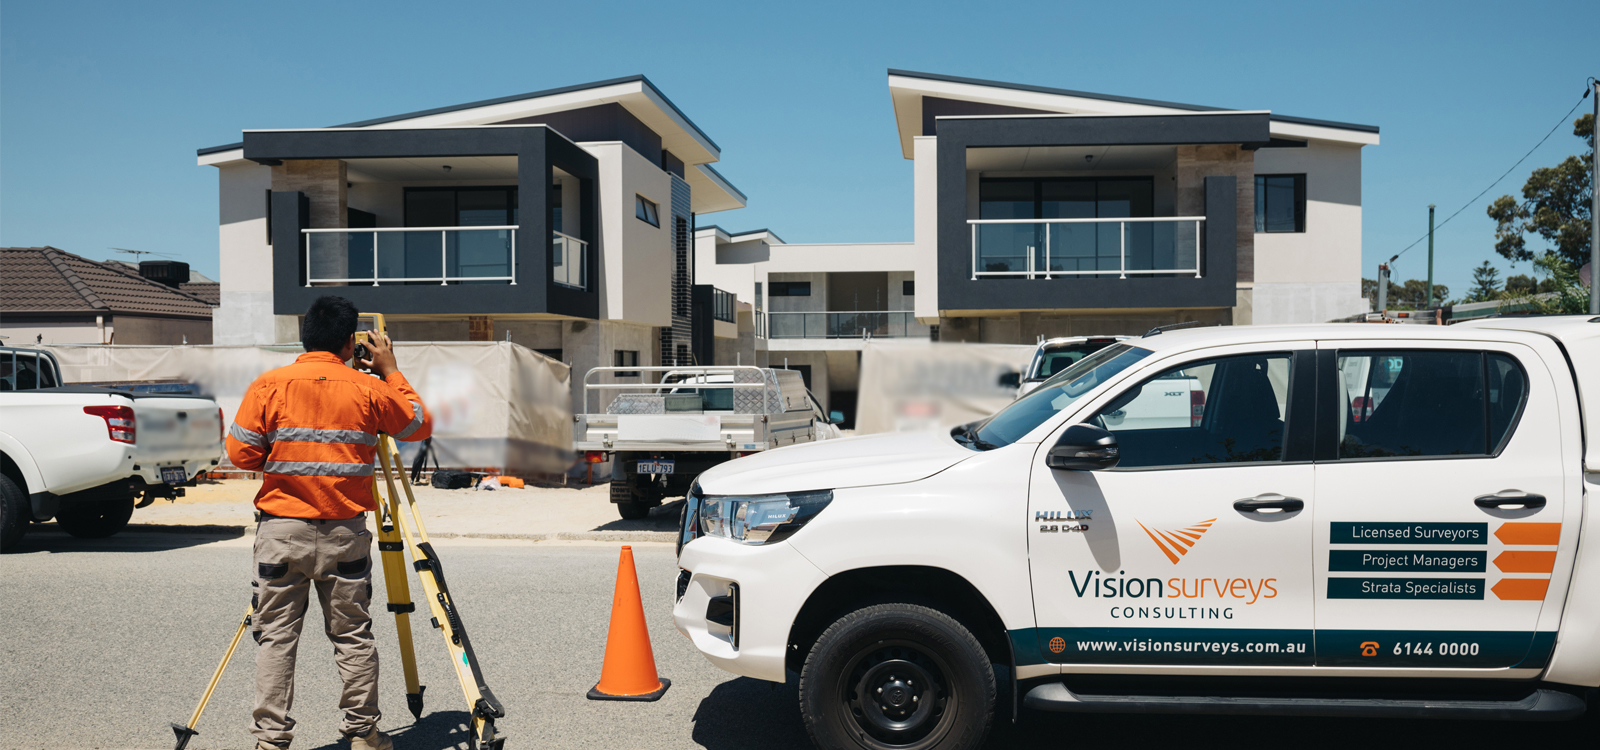 Vision Surveys Consulting